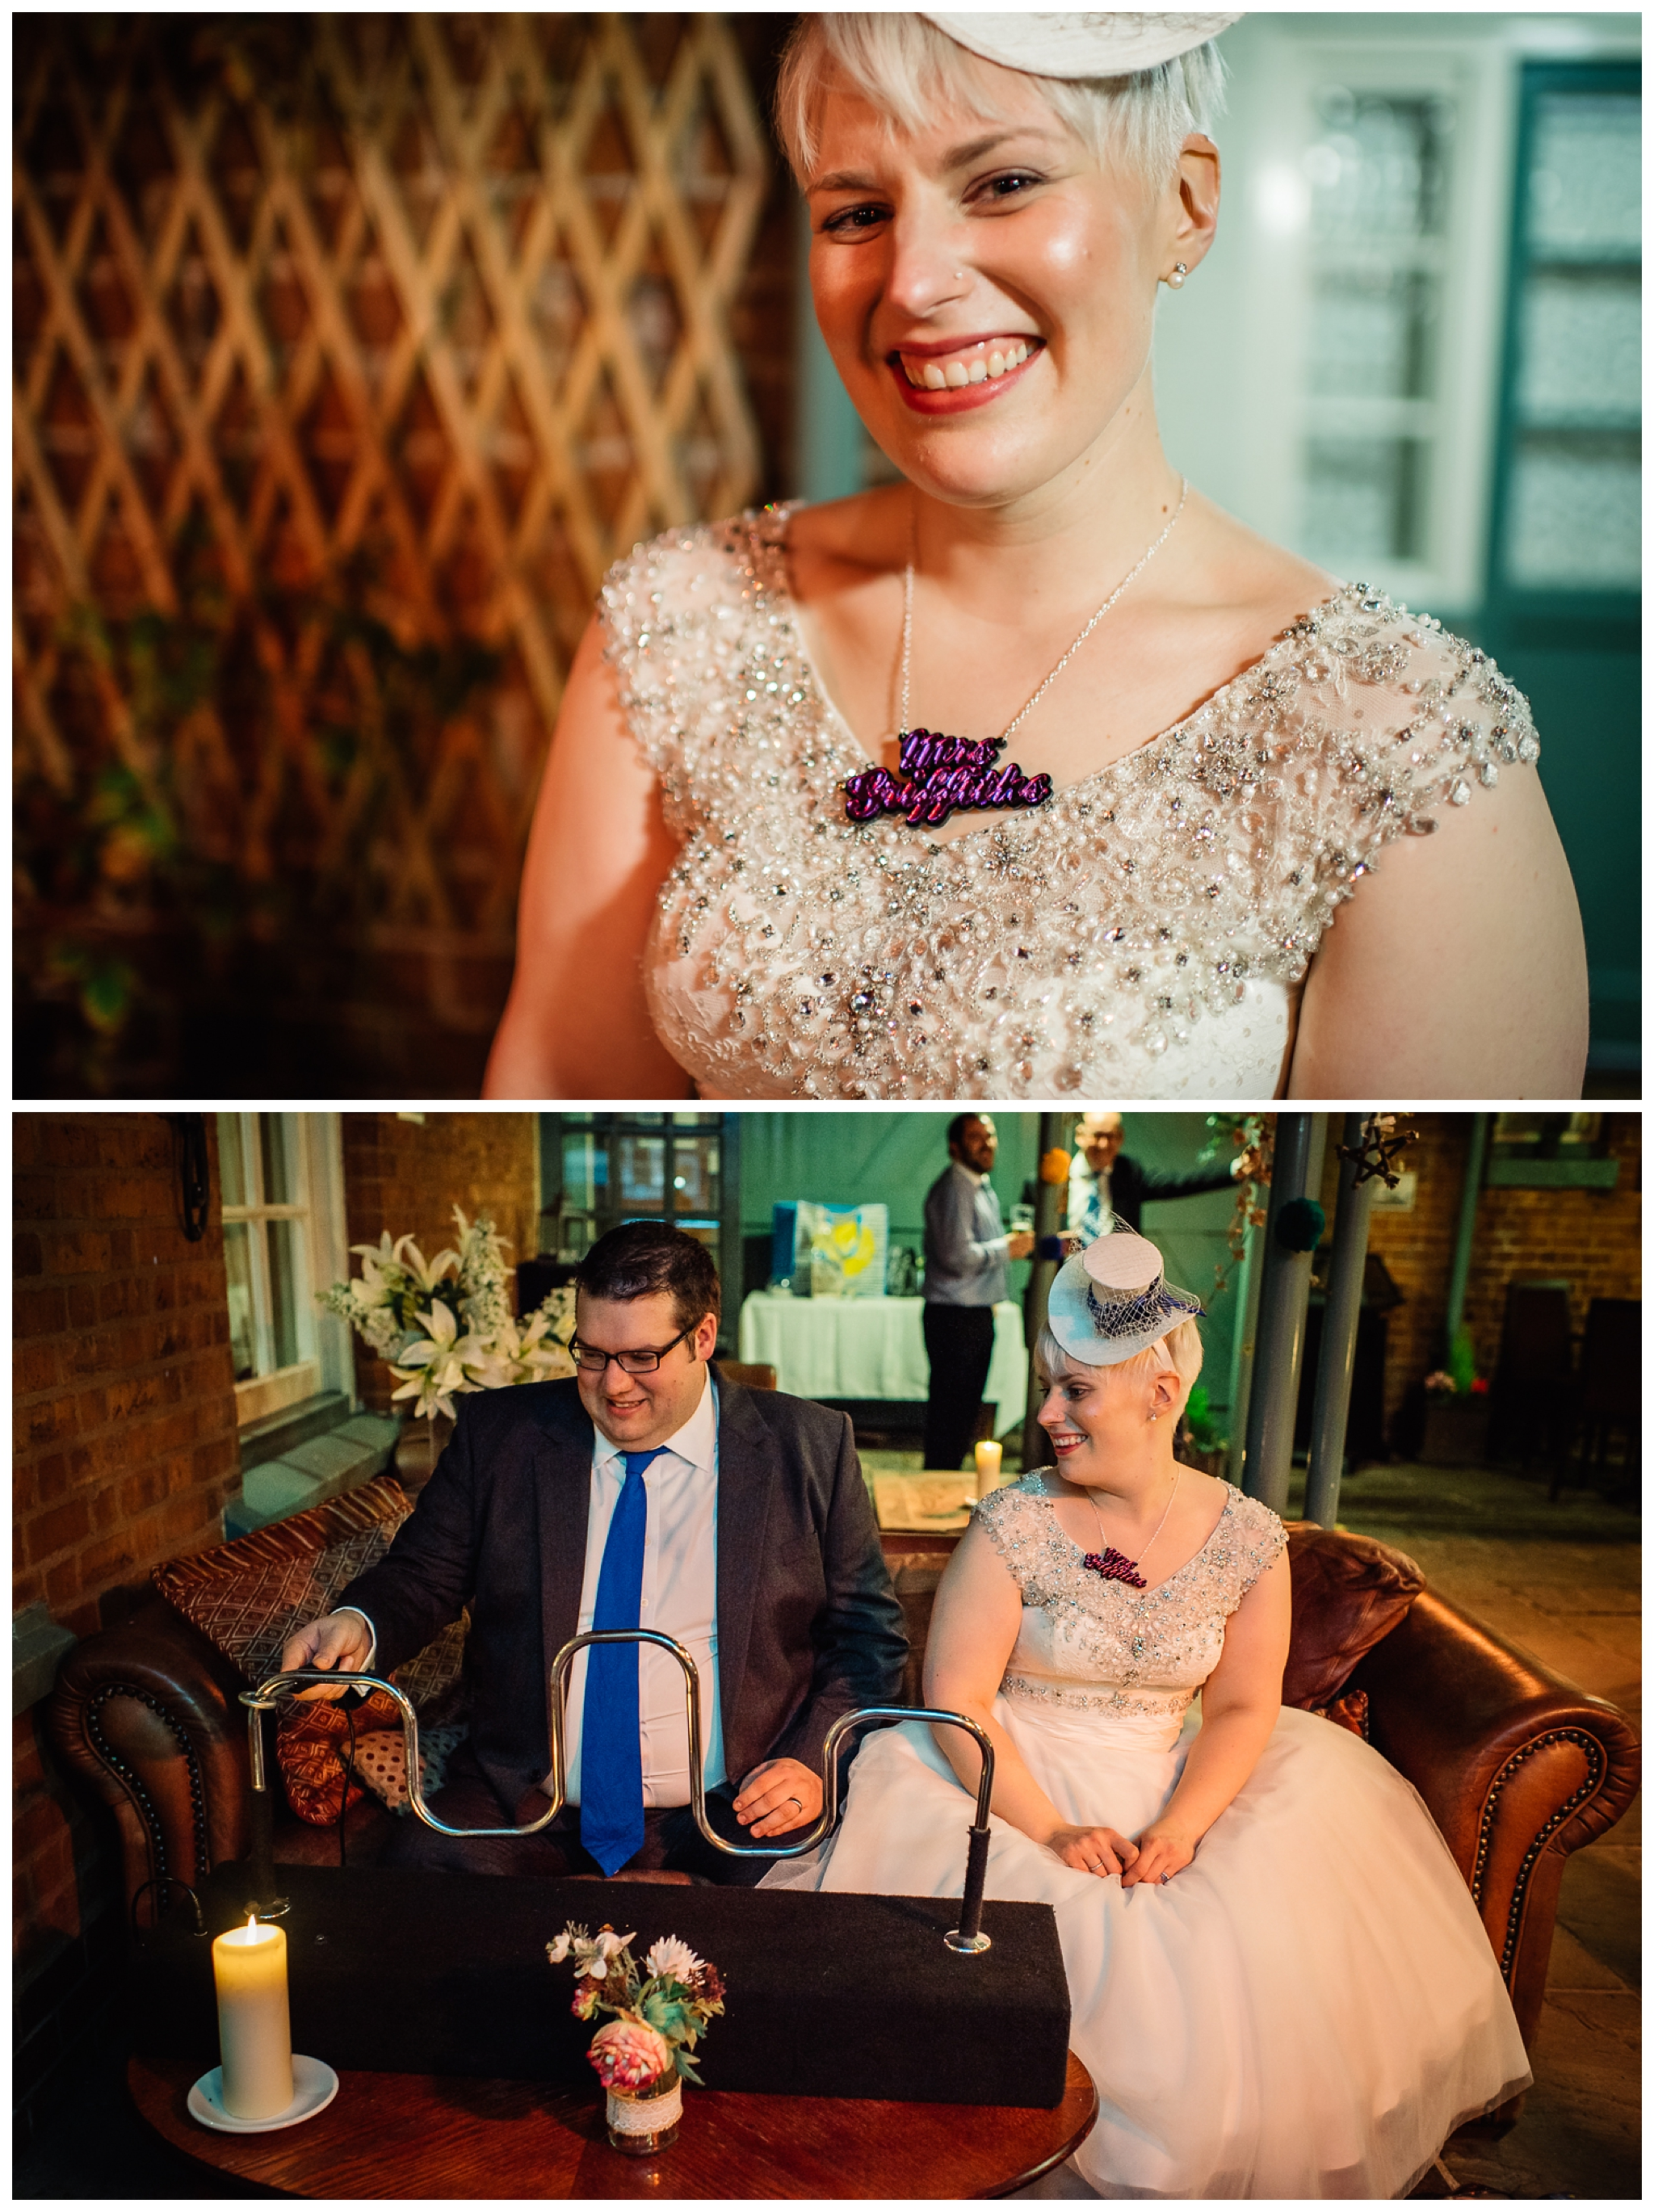 Nikki-Cooper-Photography-Autumn-Wedding-Shrewsbury_0050.jpg